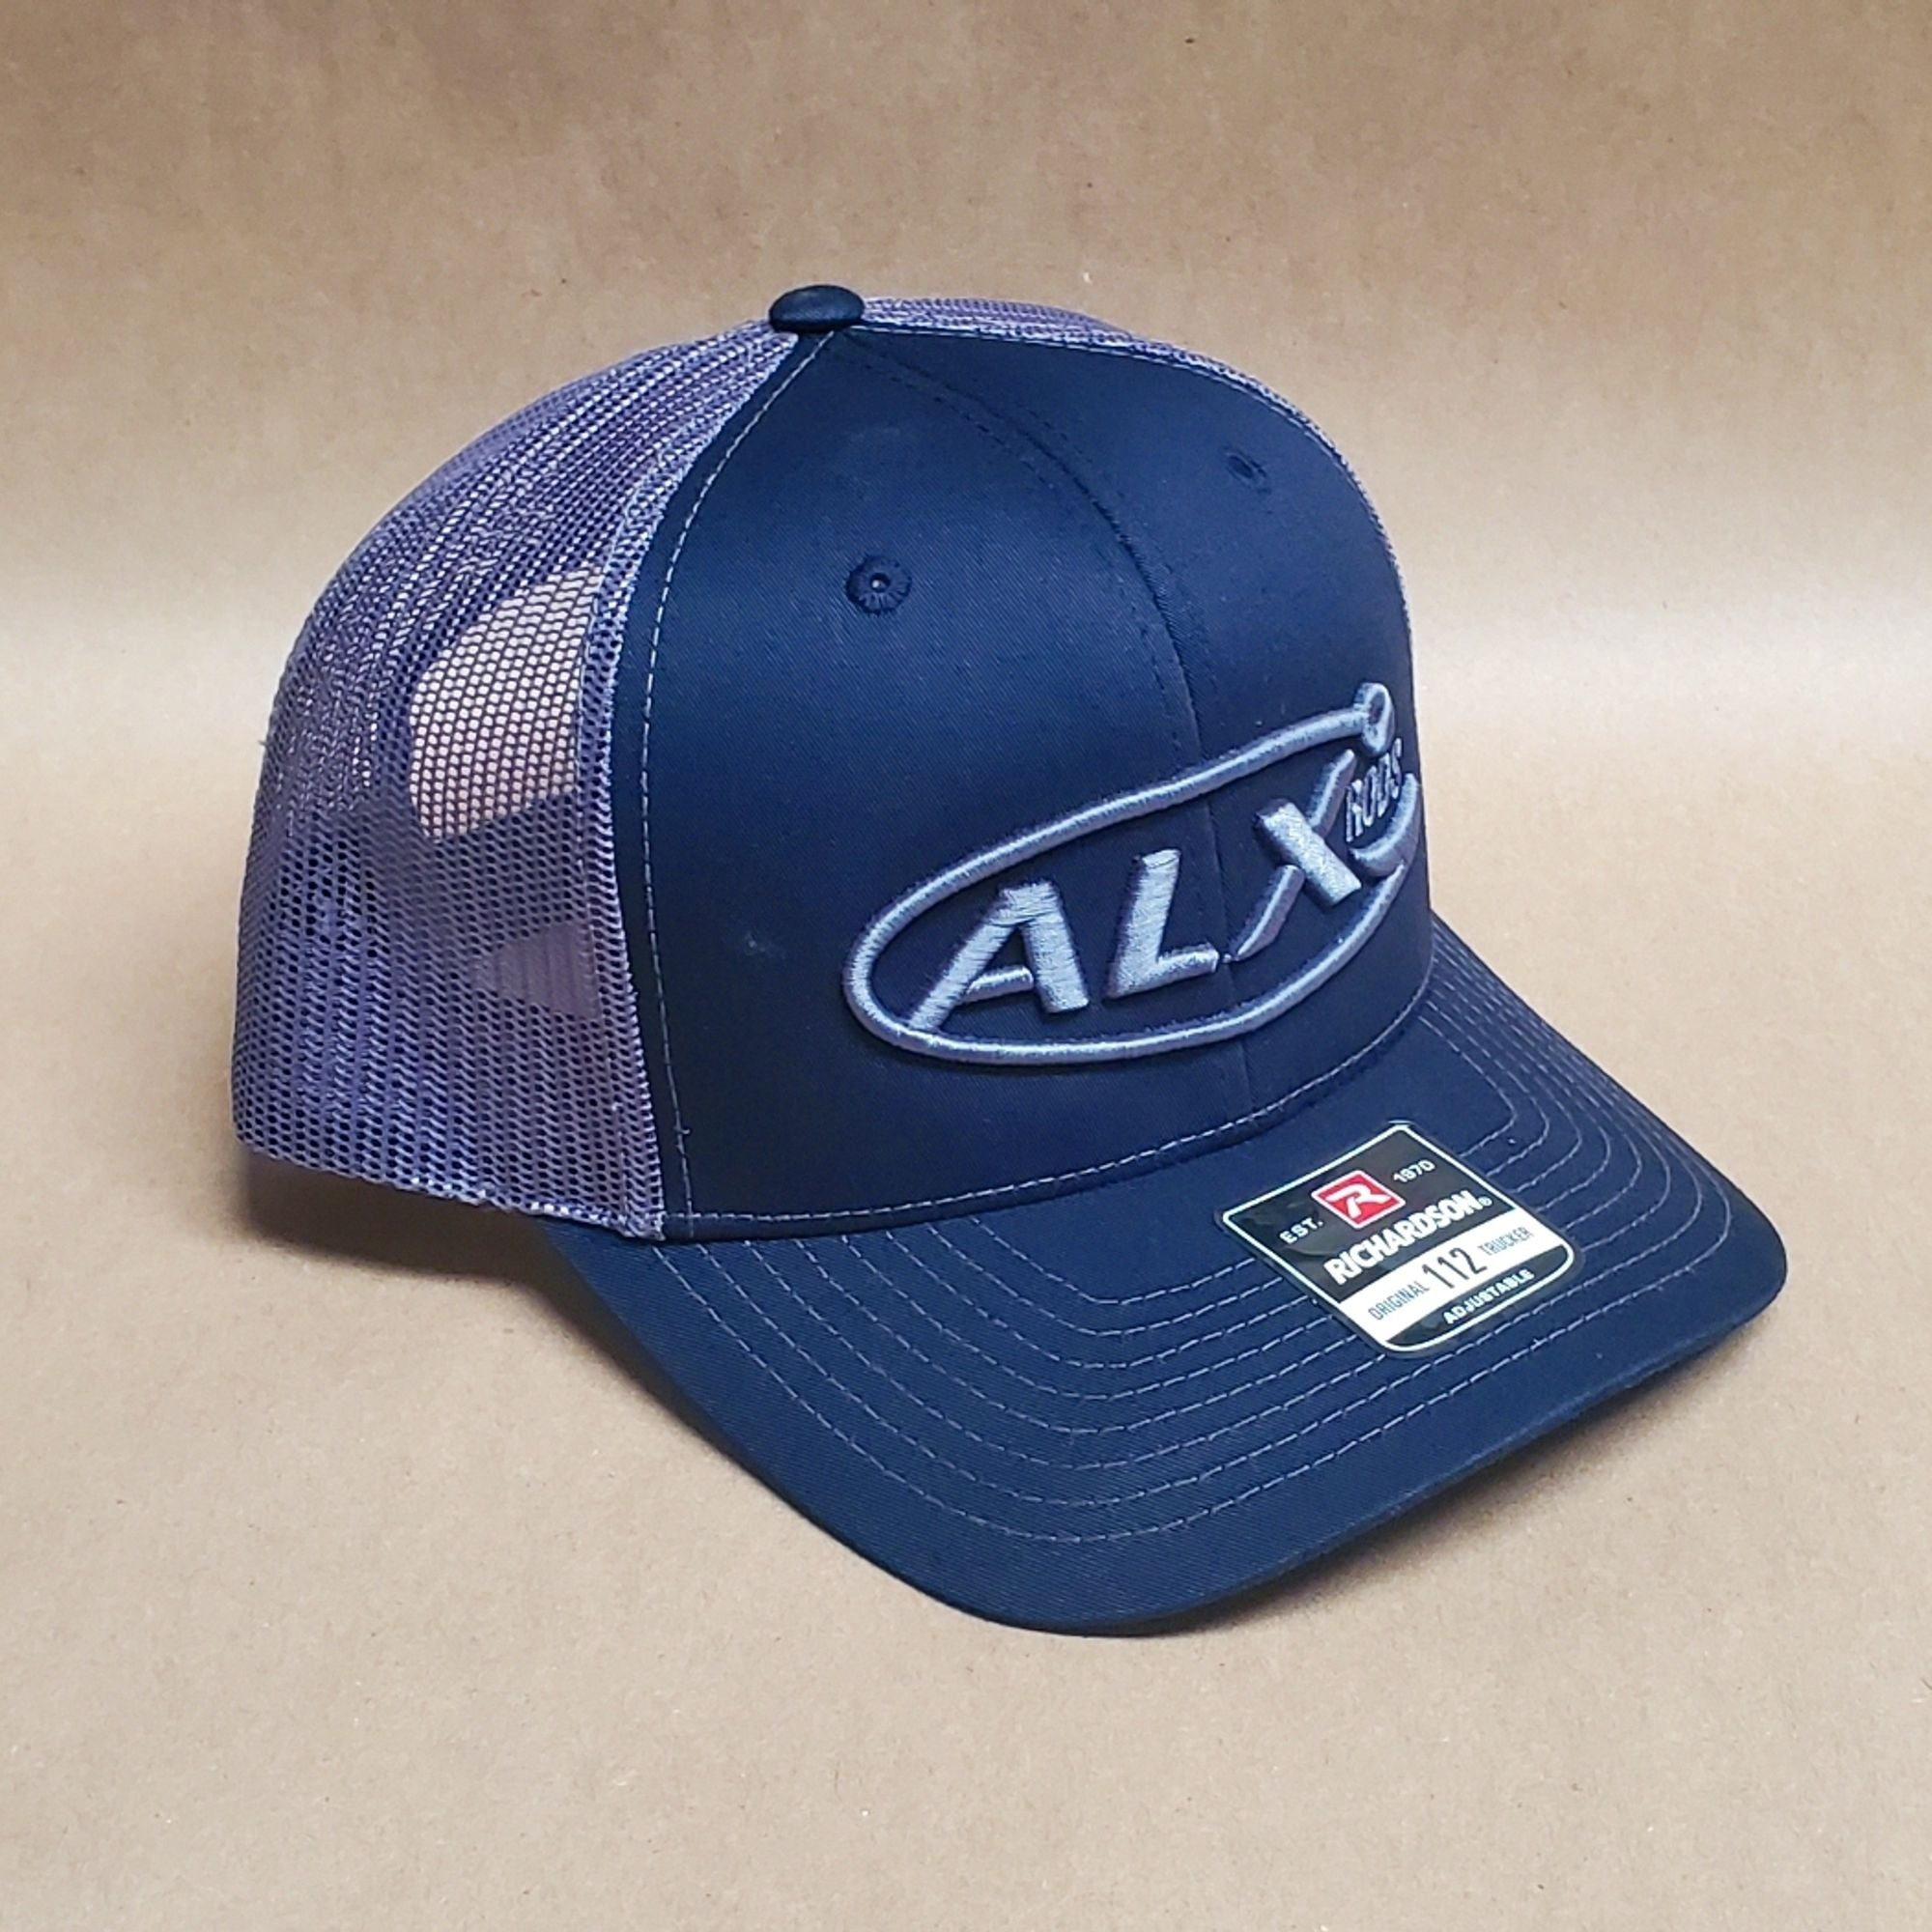 ALX Heather Navy/Charcoal Mesh Trucker Richardson Hat